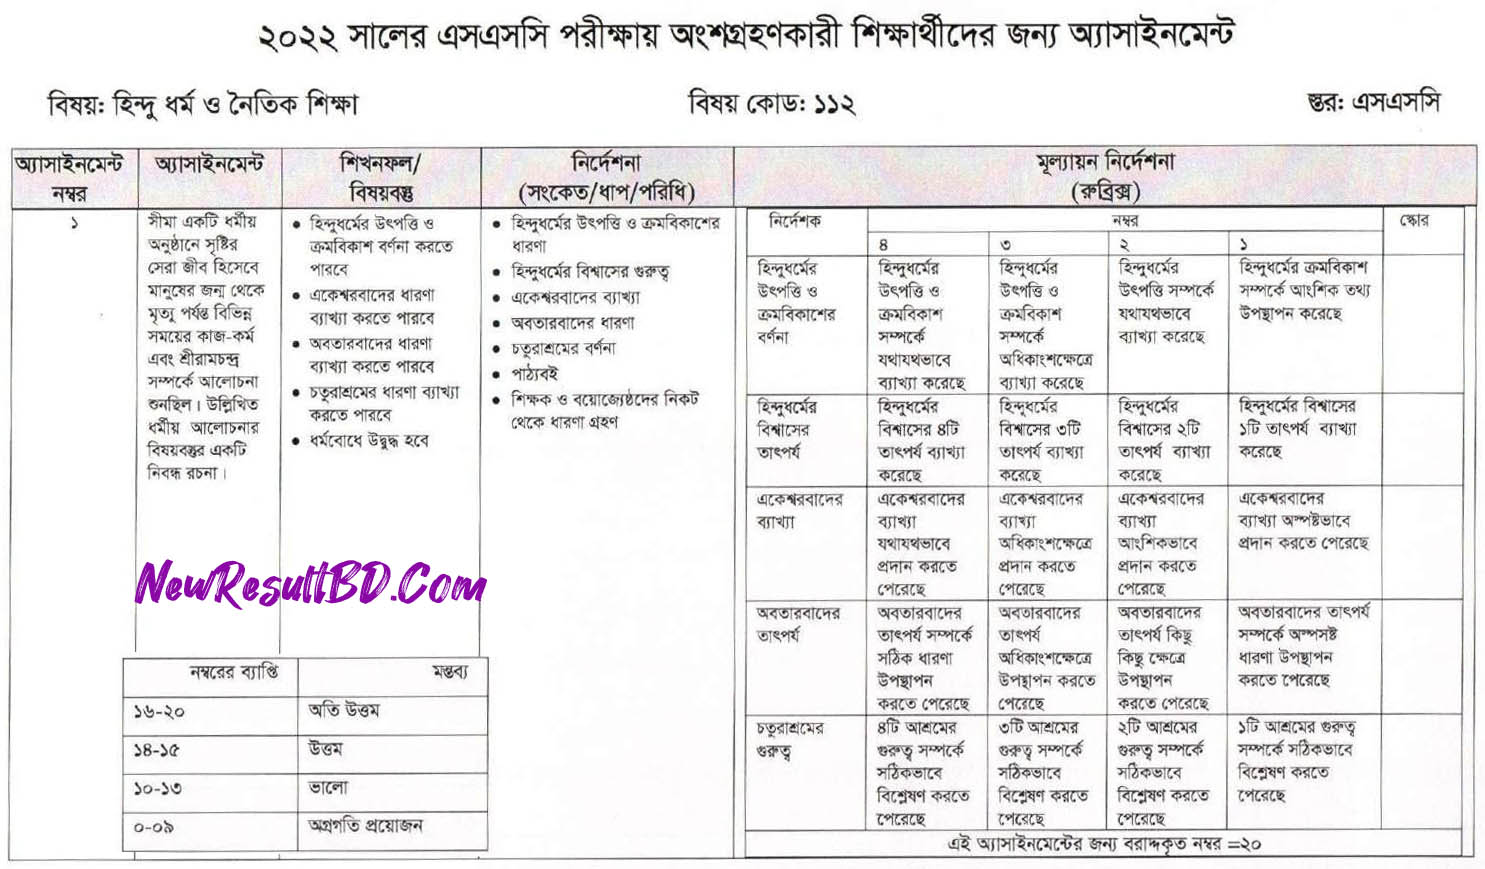 Hinduism and Moral Education SSC 6th Week Assignment 2022